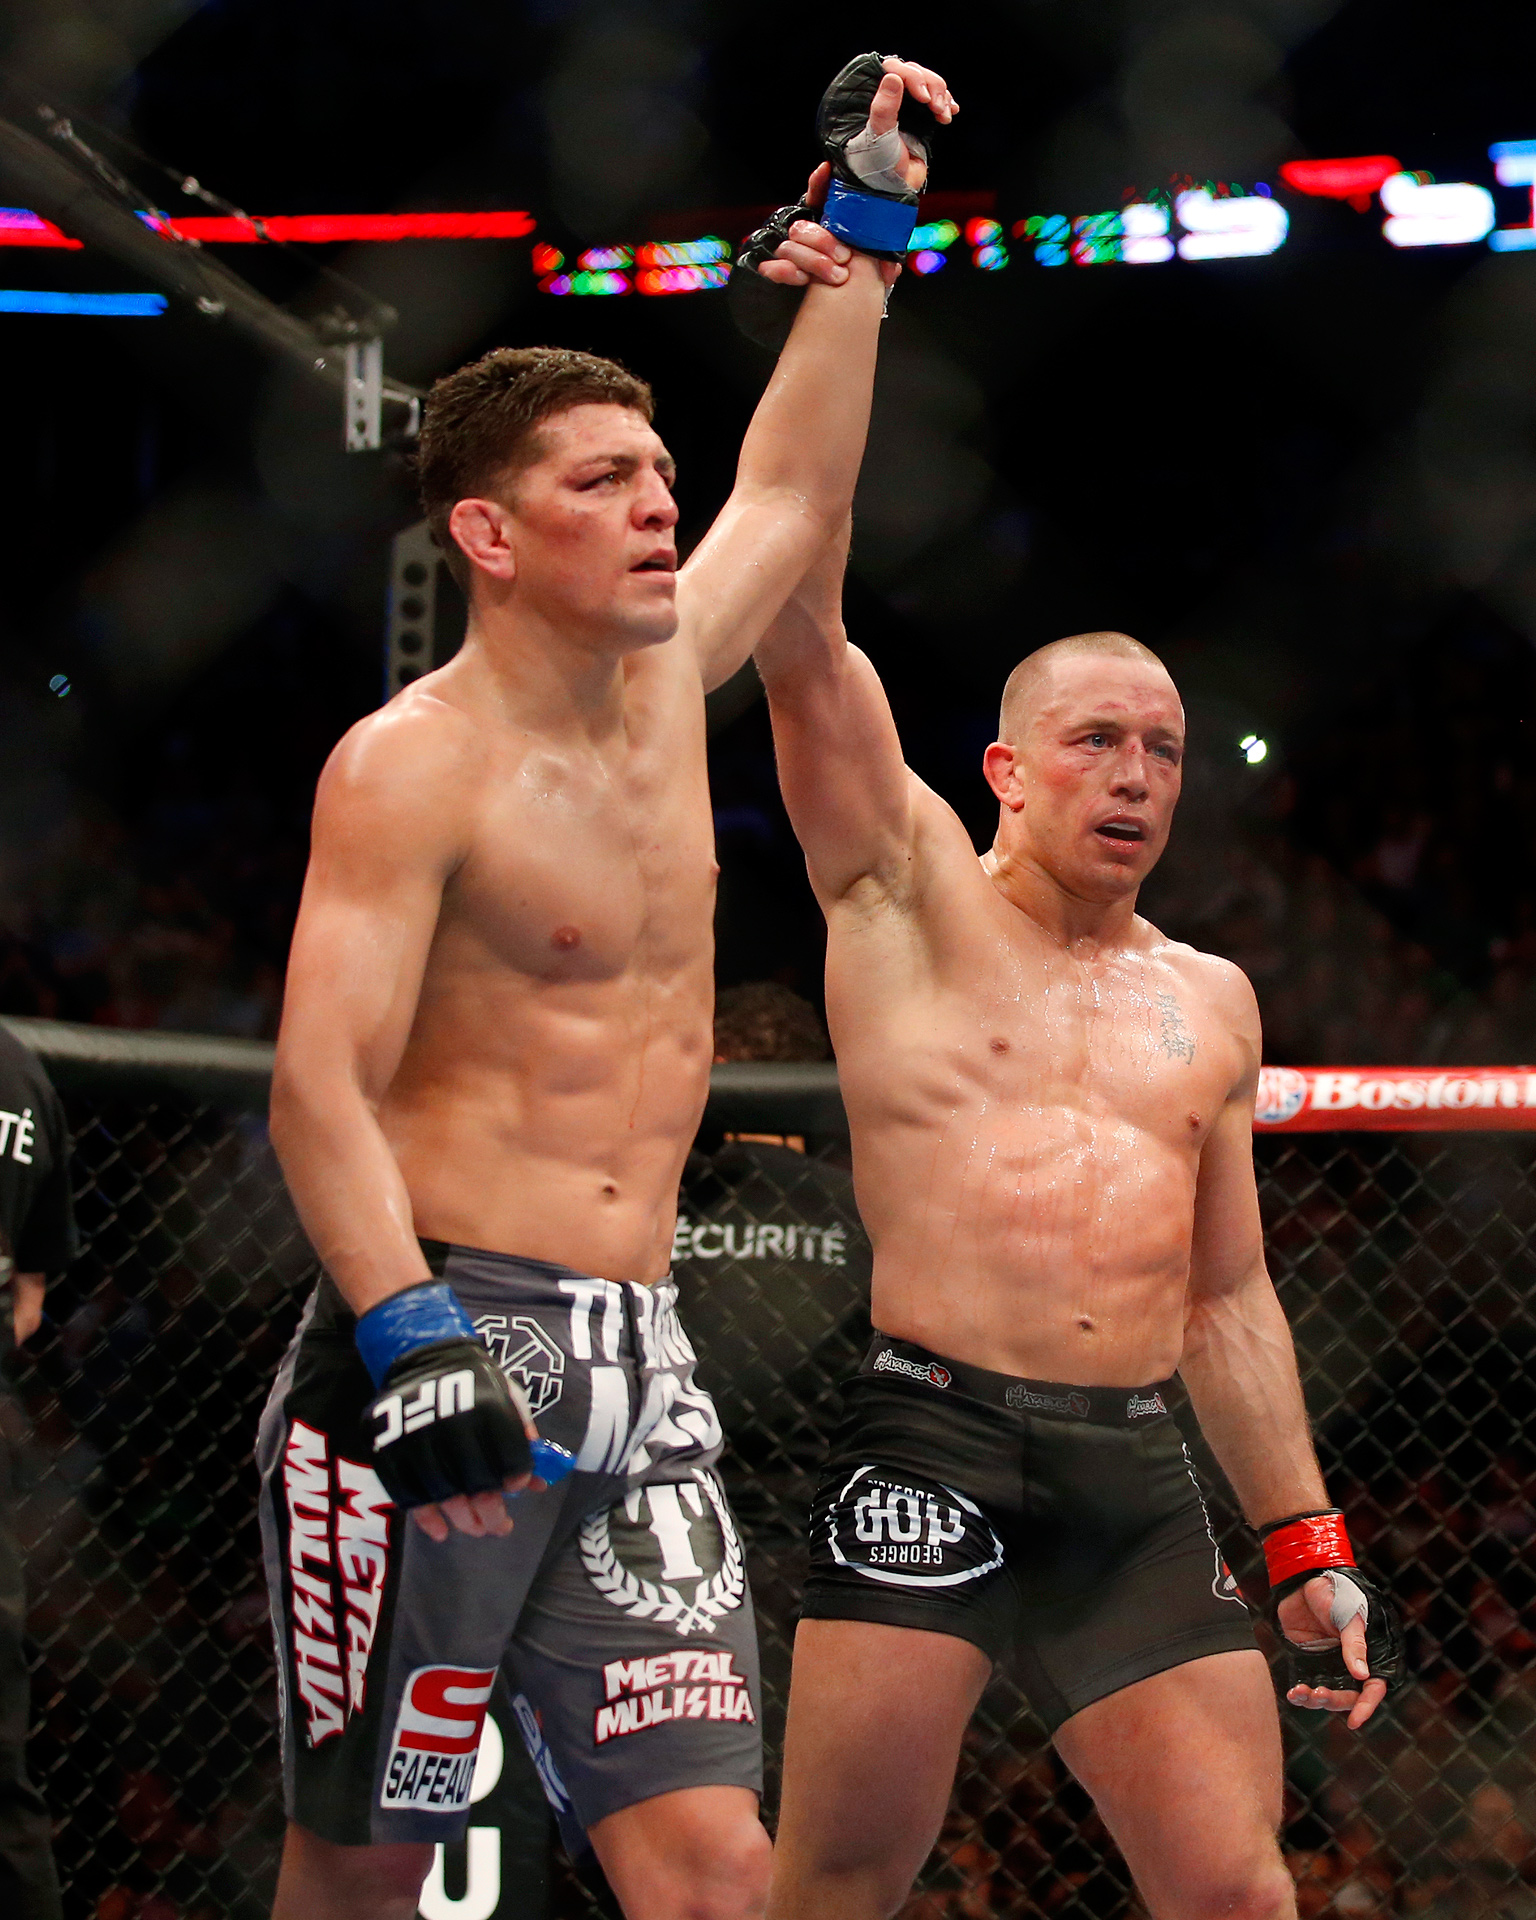 Mma: Nick Diaz And Georges St-Pierre